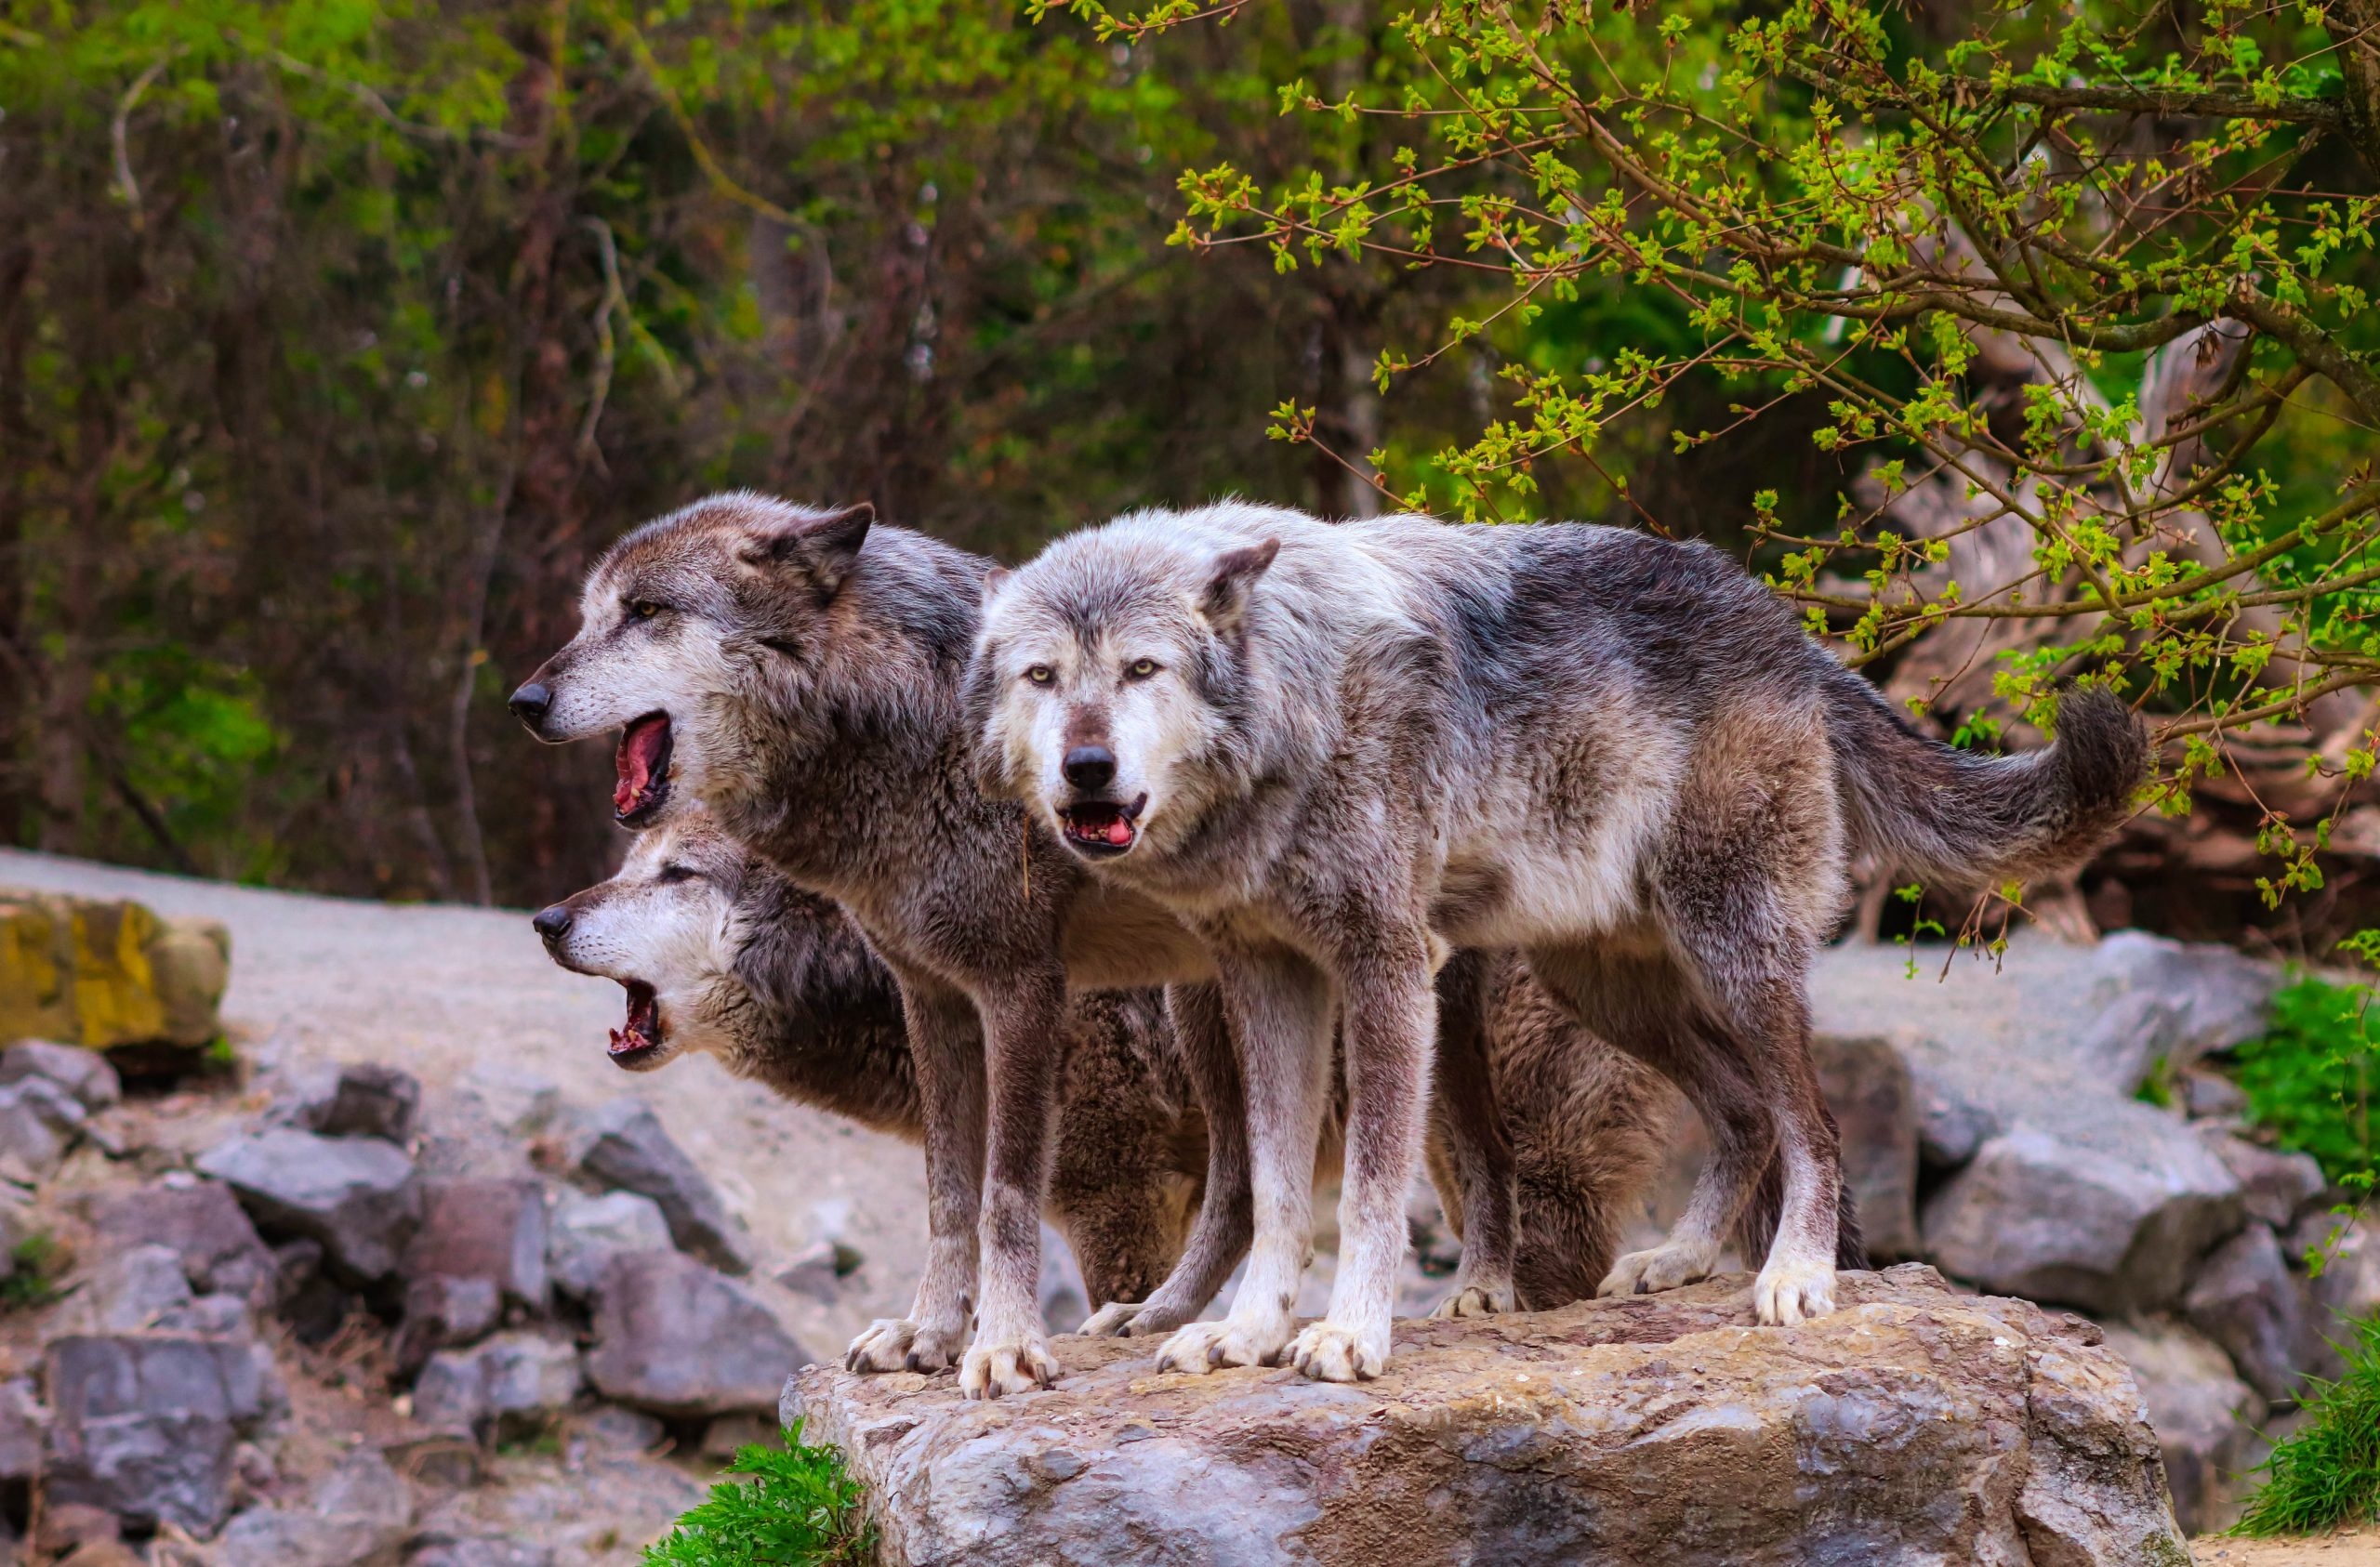 Three gray wolves standing atop a rock surrounded by vegetation